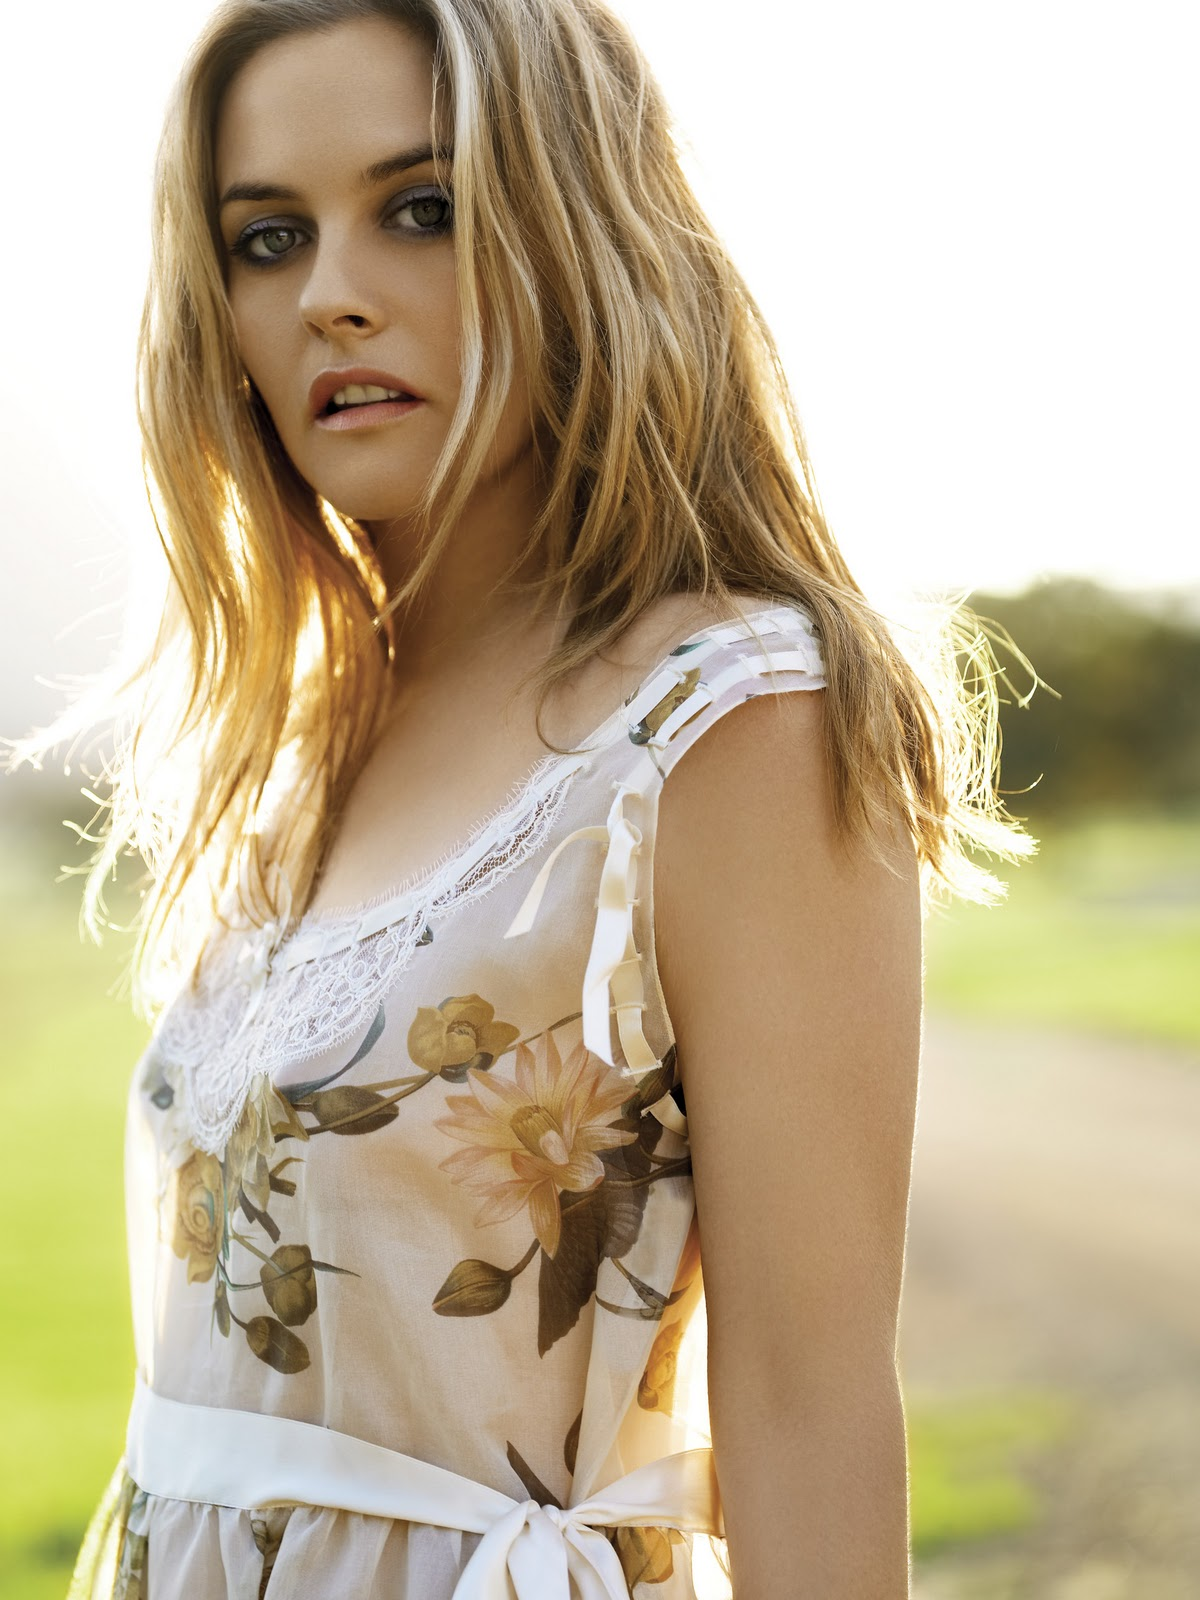 For Alicia Junior Girls Clothing Kids Clothes Kids: ECO GLAMAZINE: Alicia Silverstone: Living The Kind Life